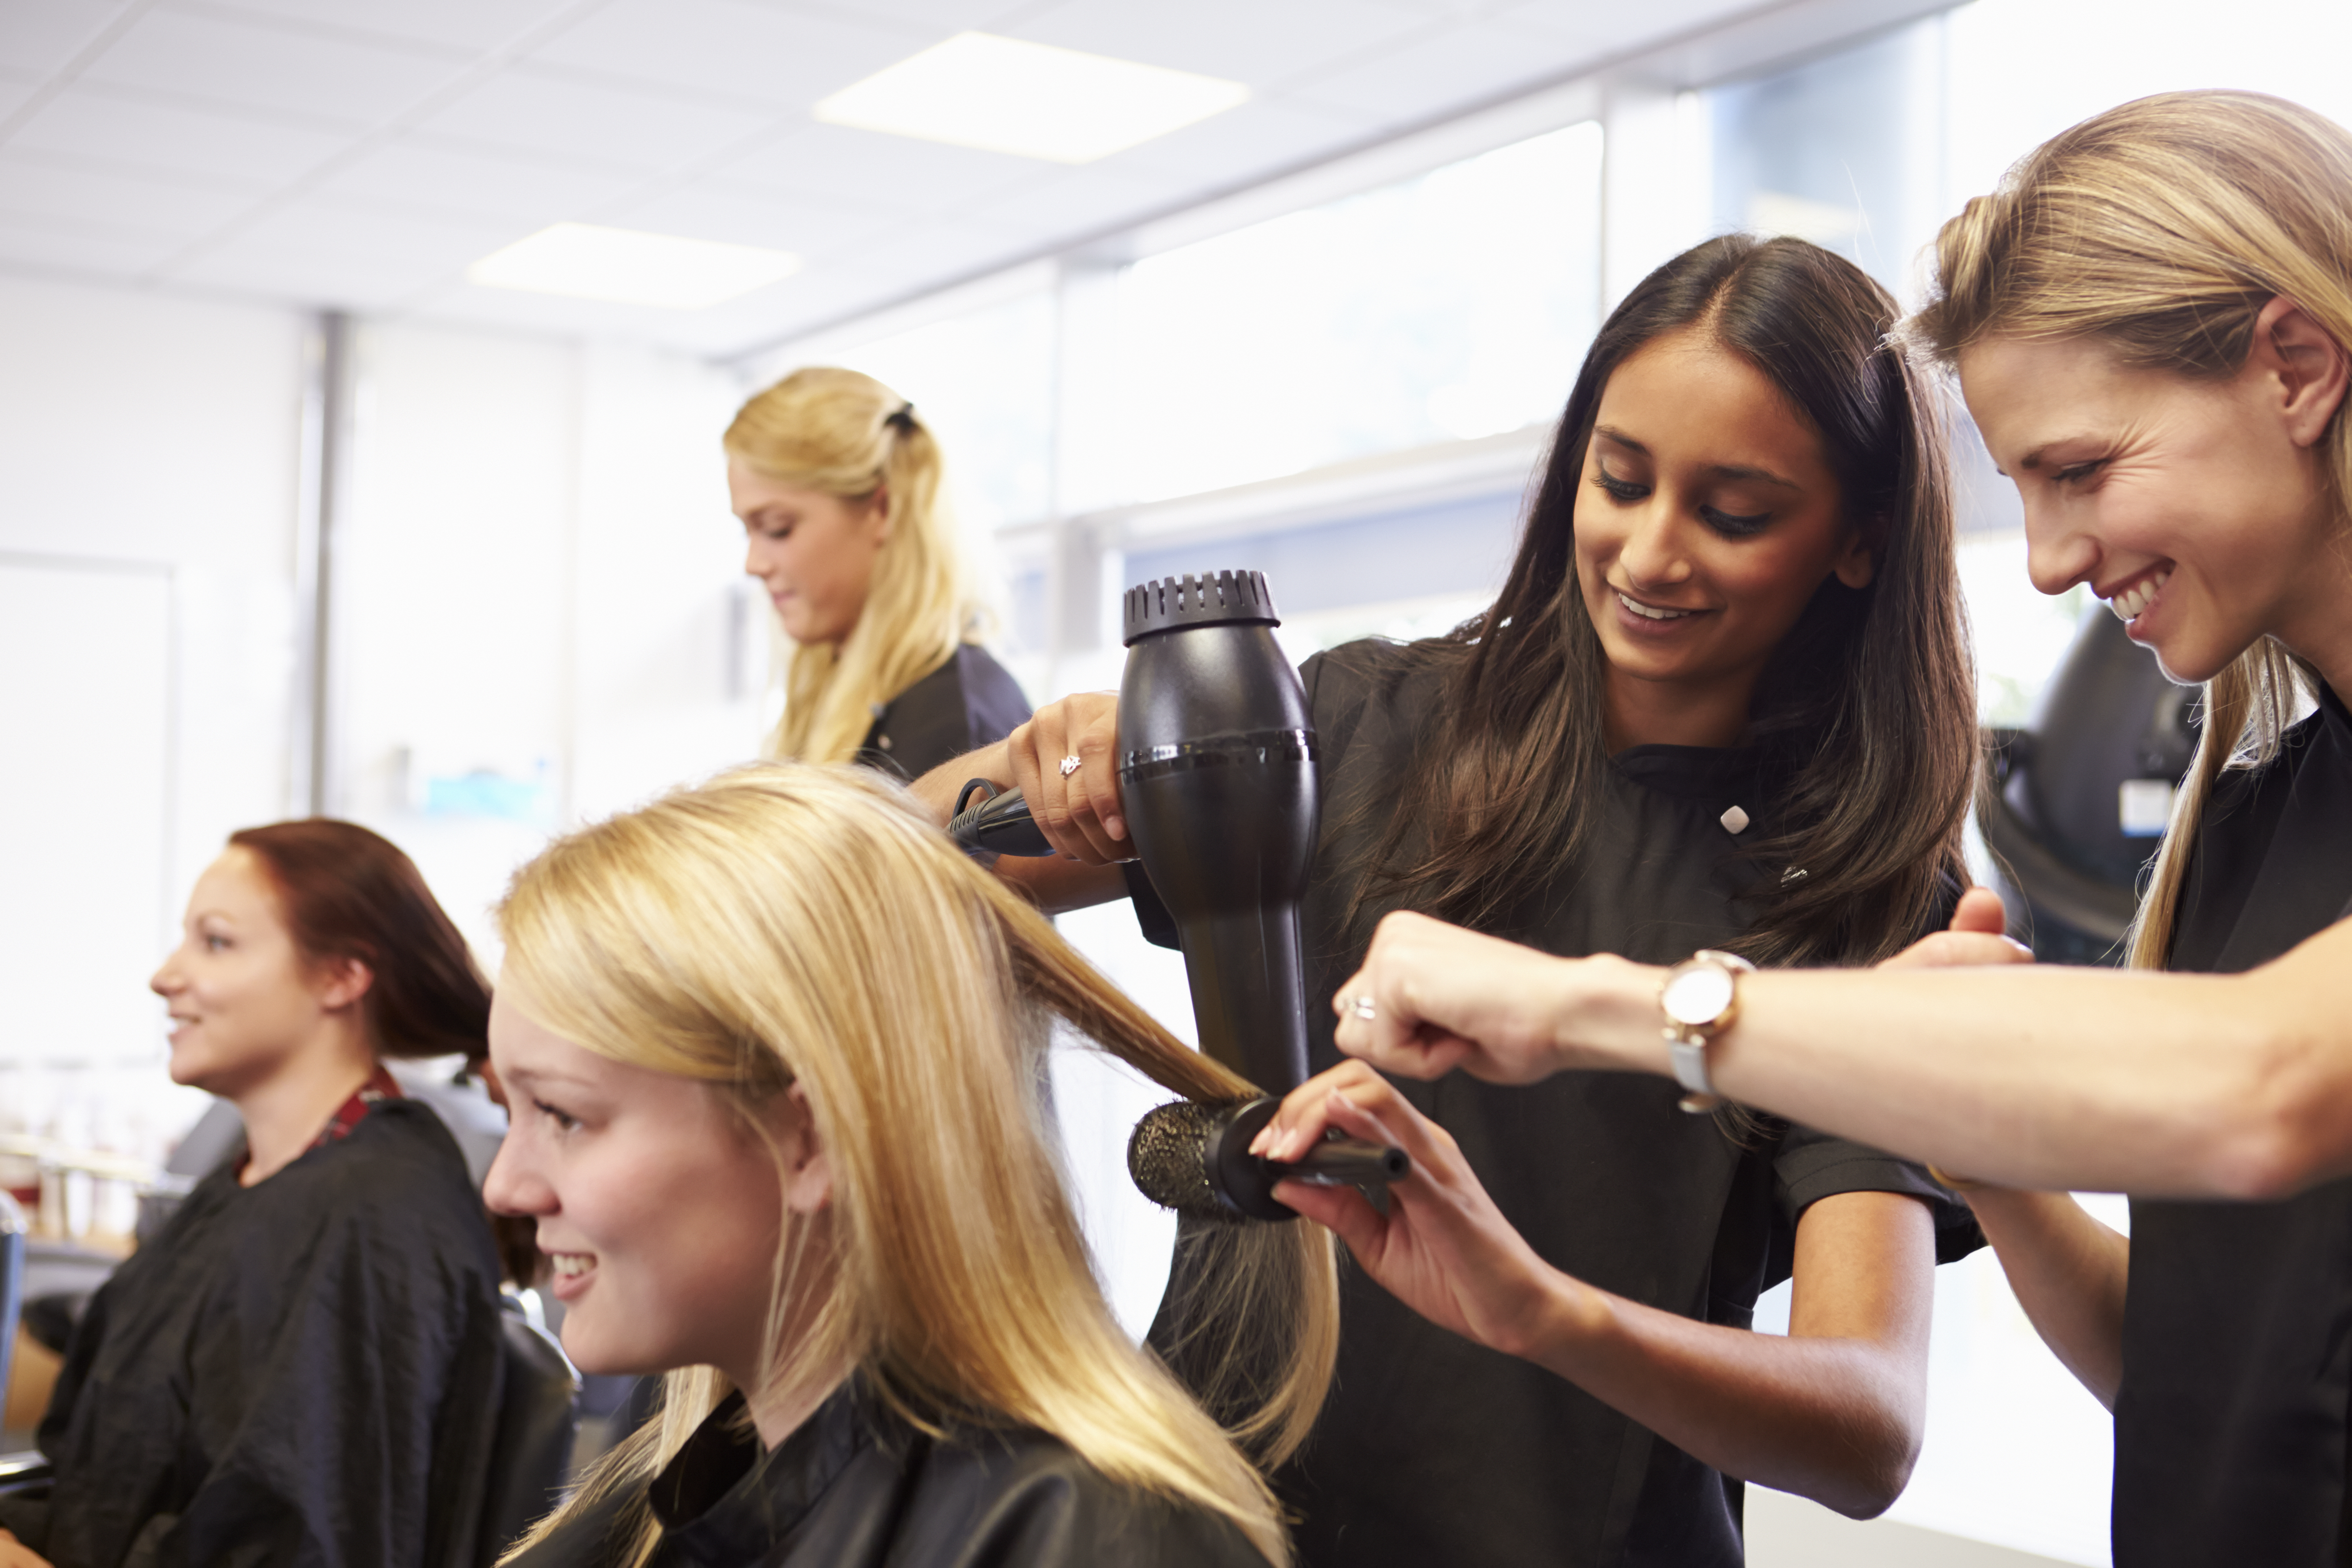 Apprentice hairdresser learning on the job